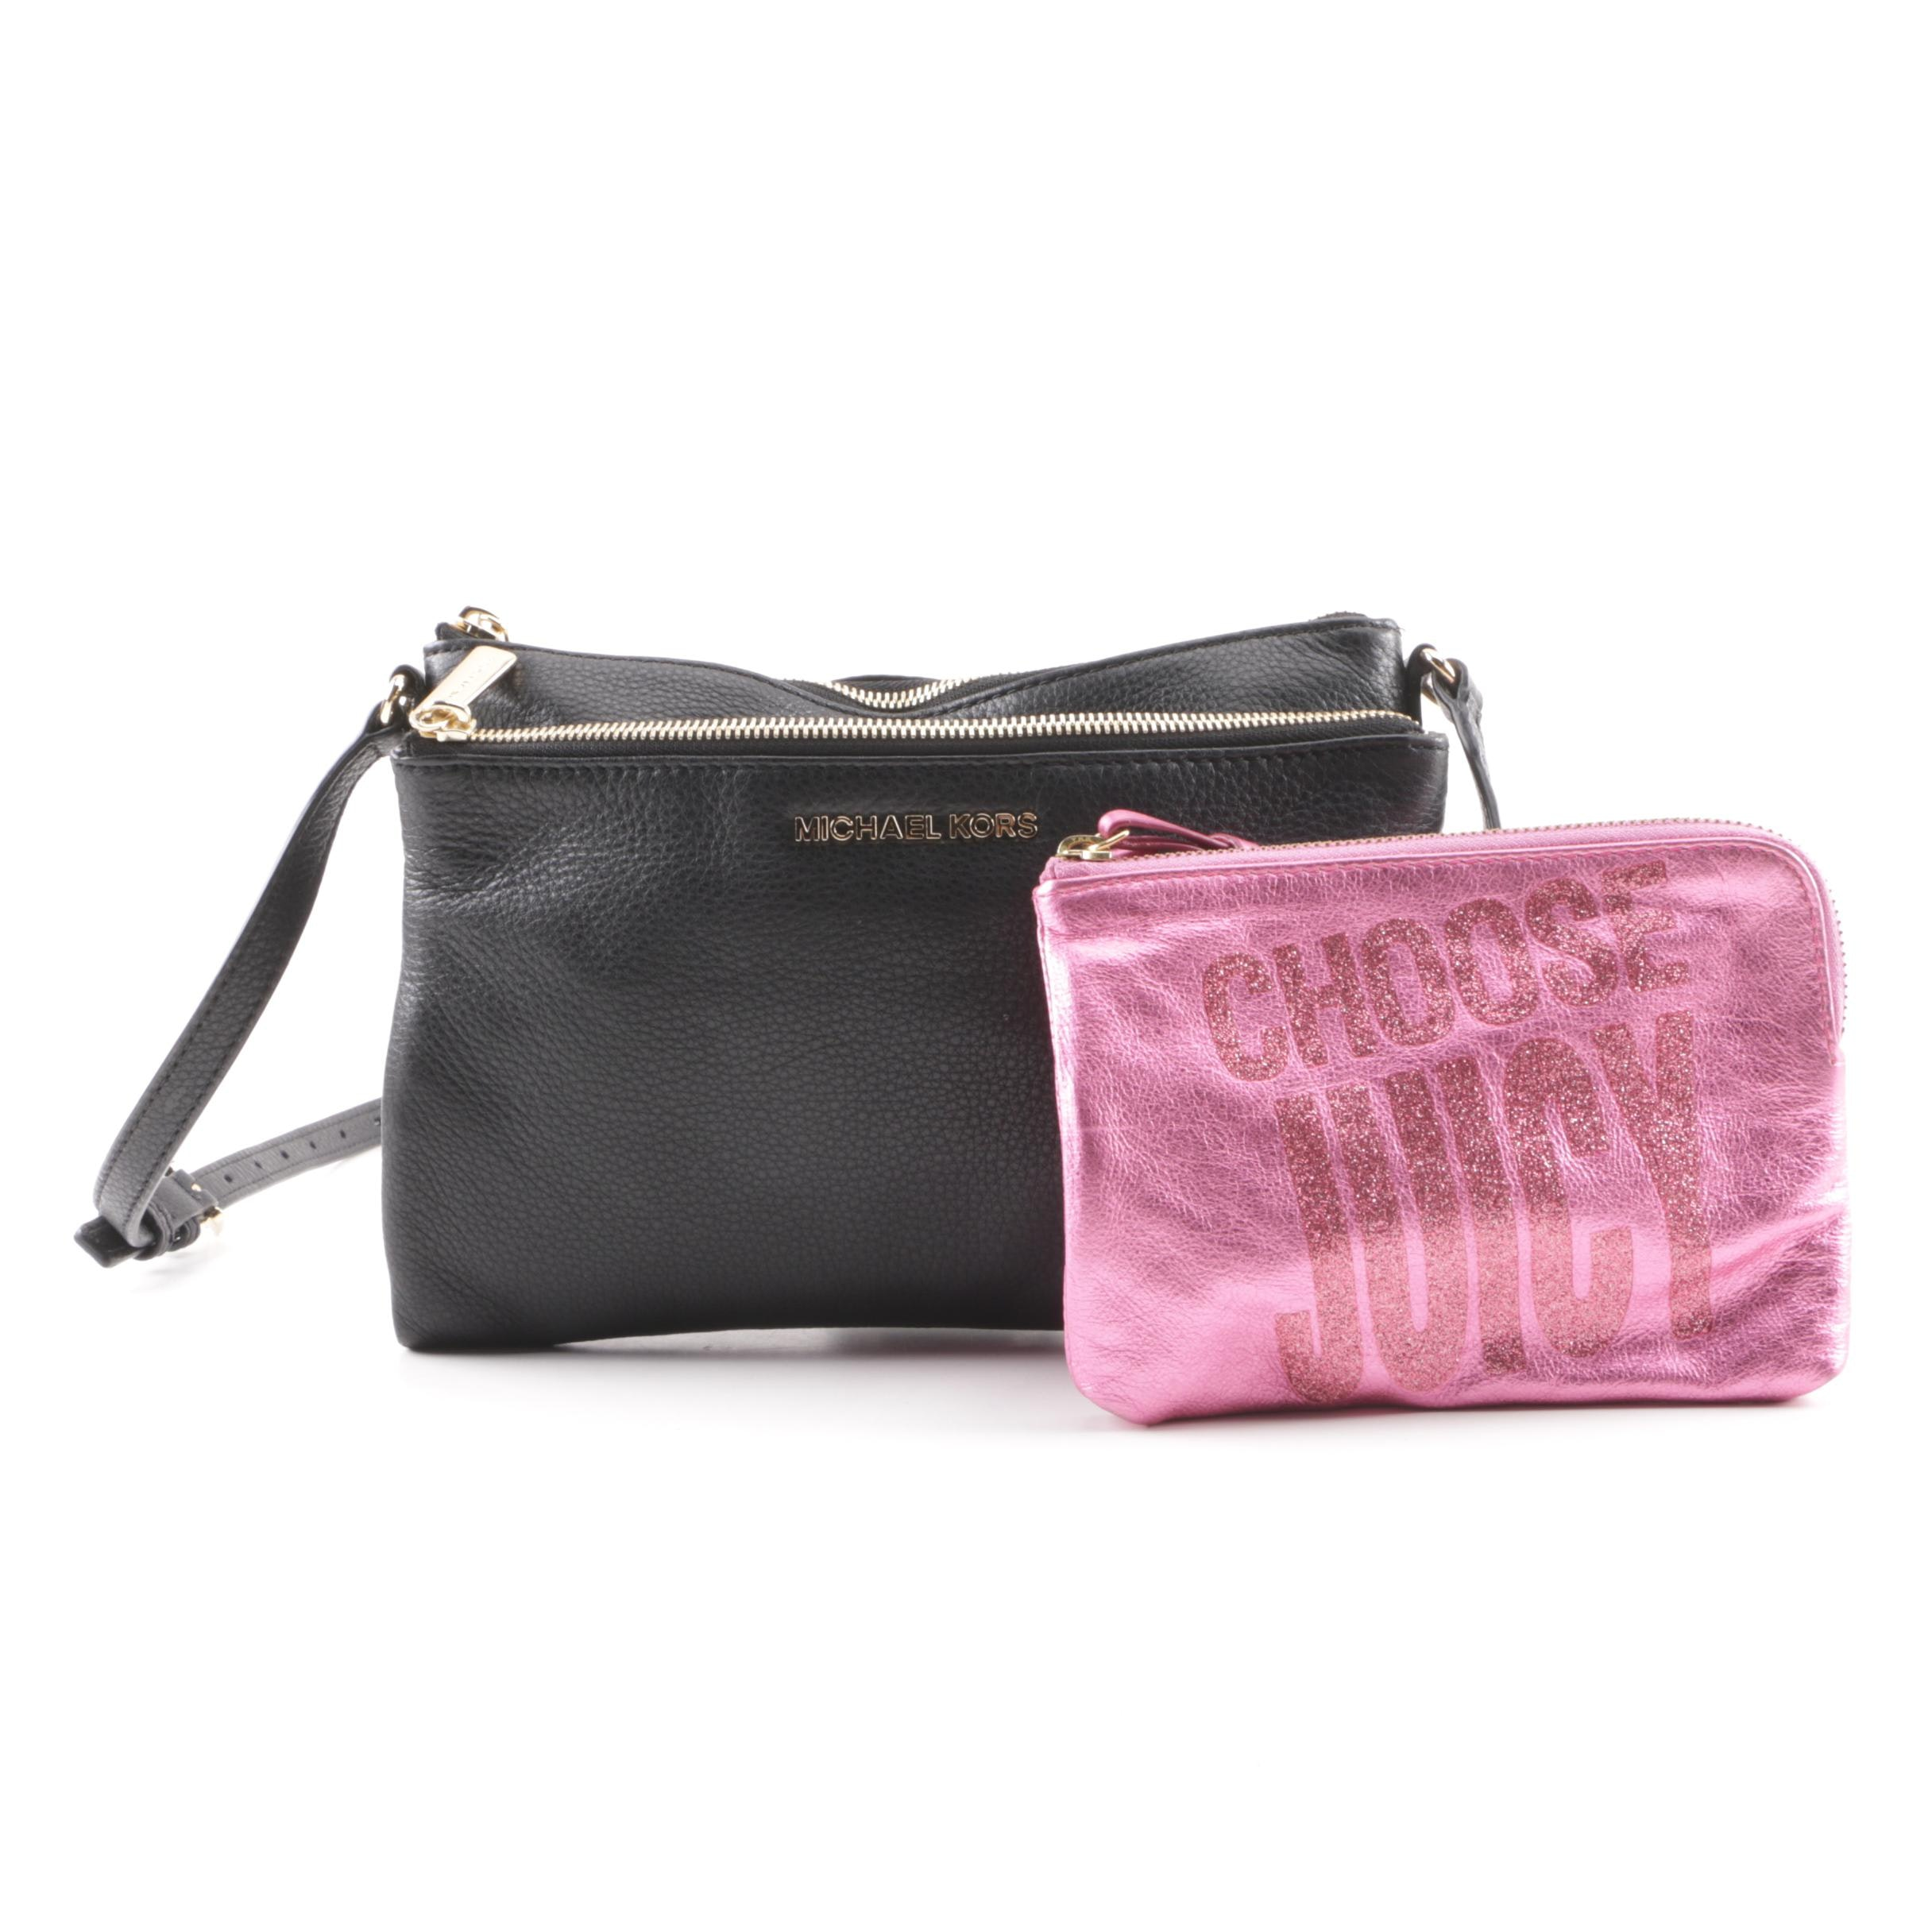 Michael Kors Crossbody and Juicy Couture Wristlet